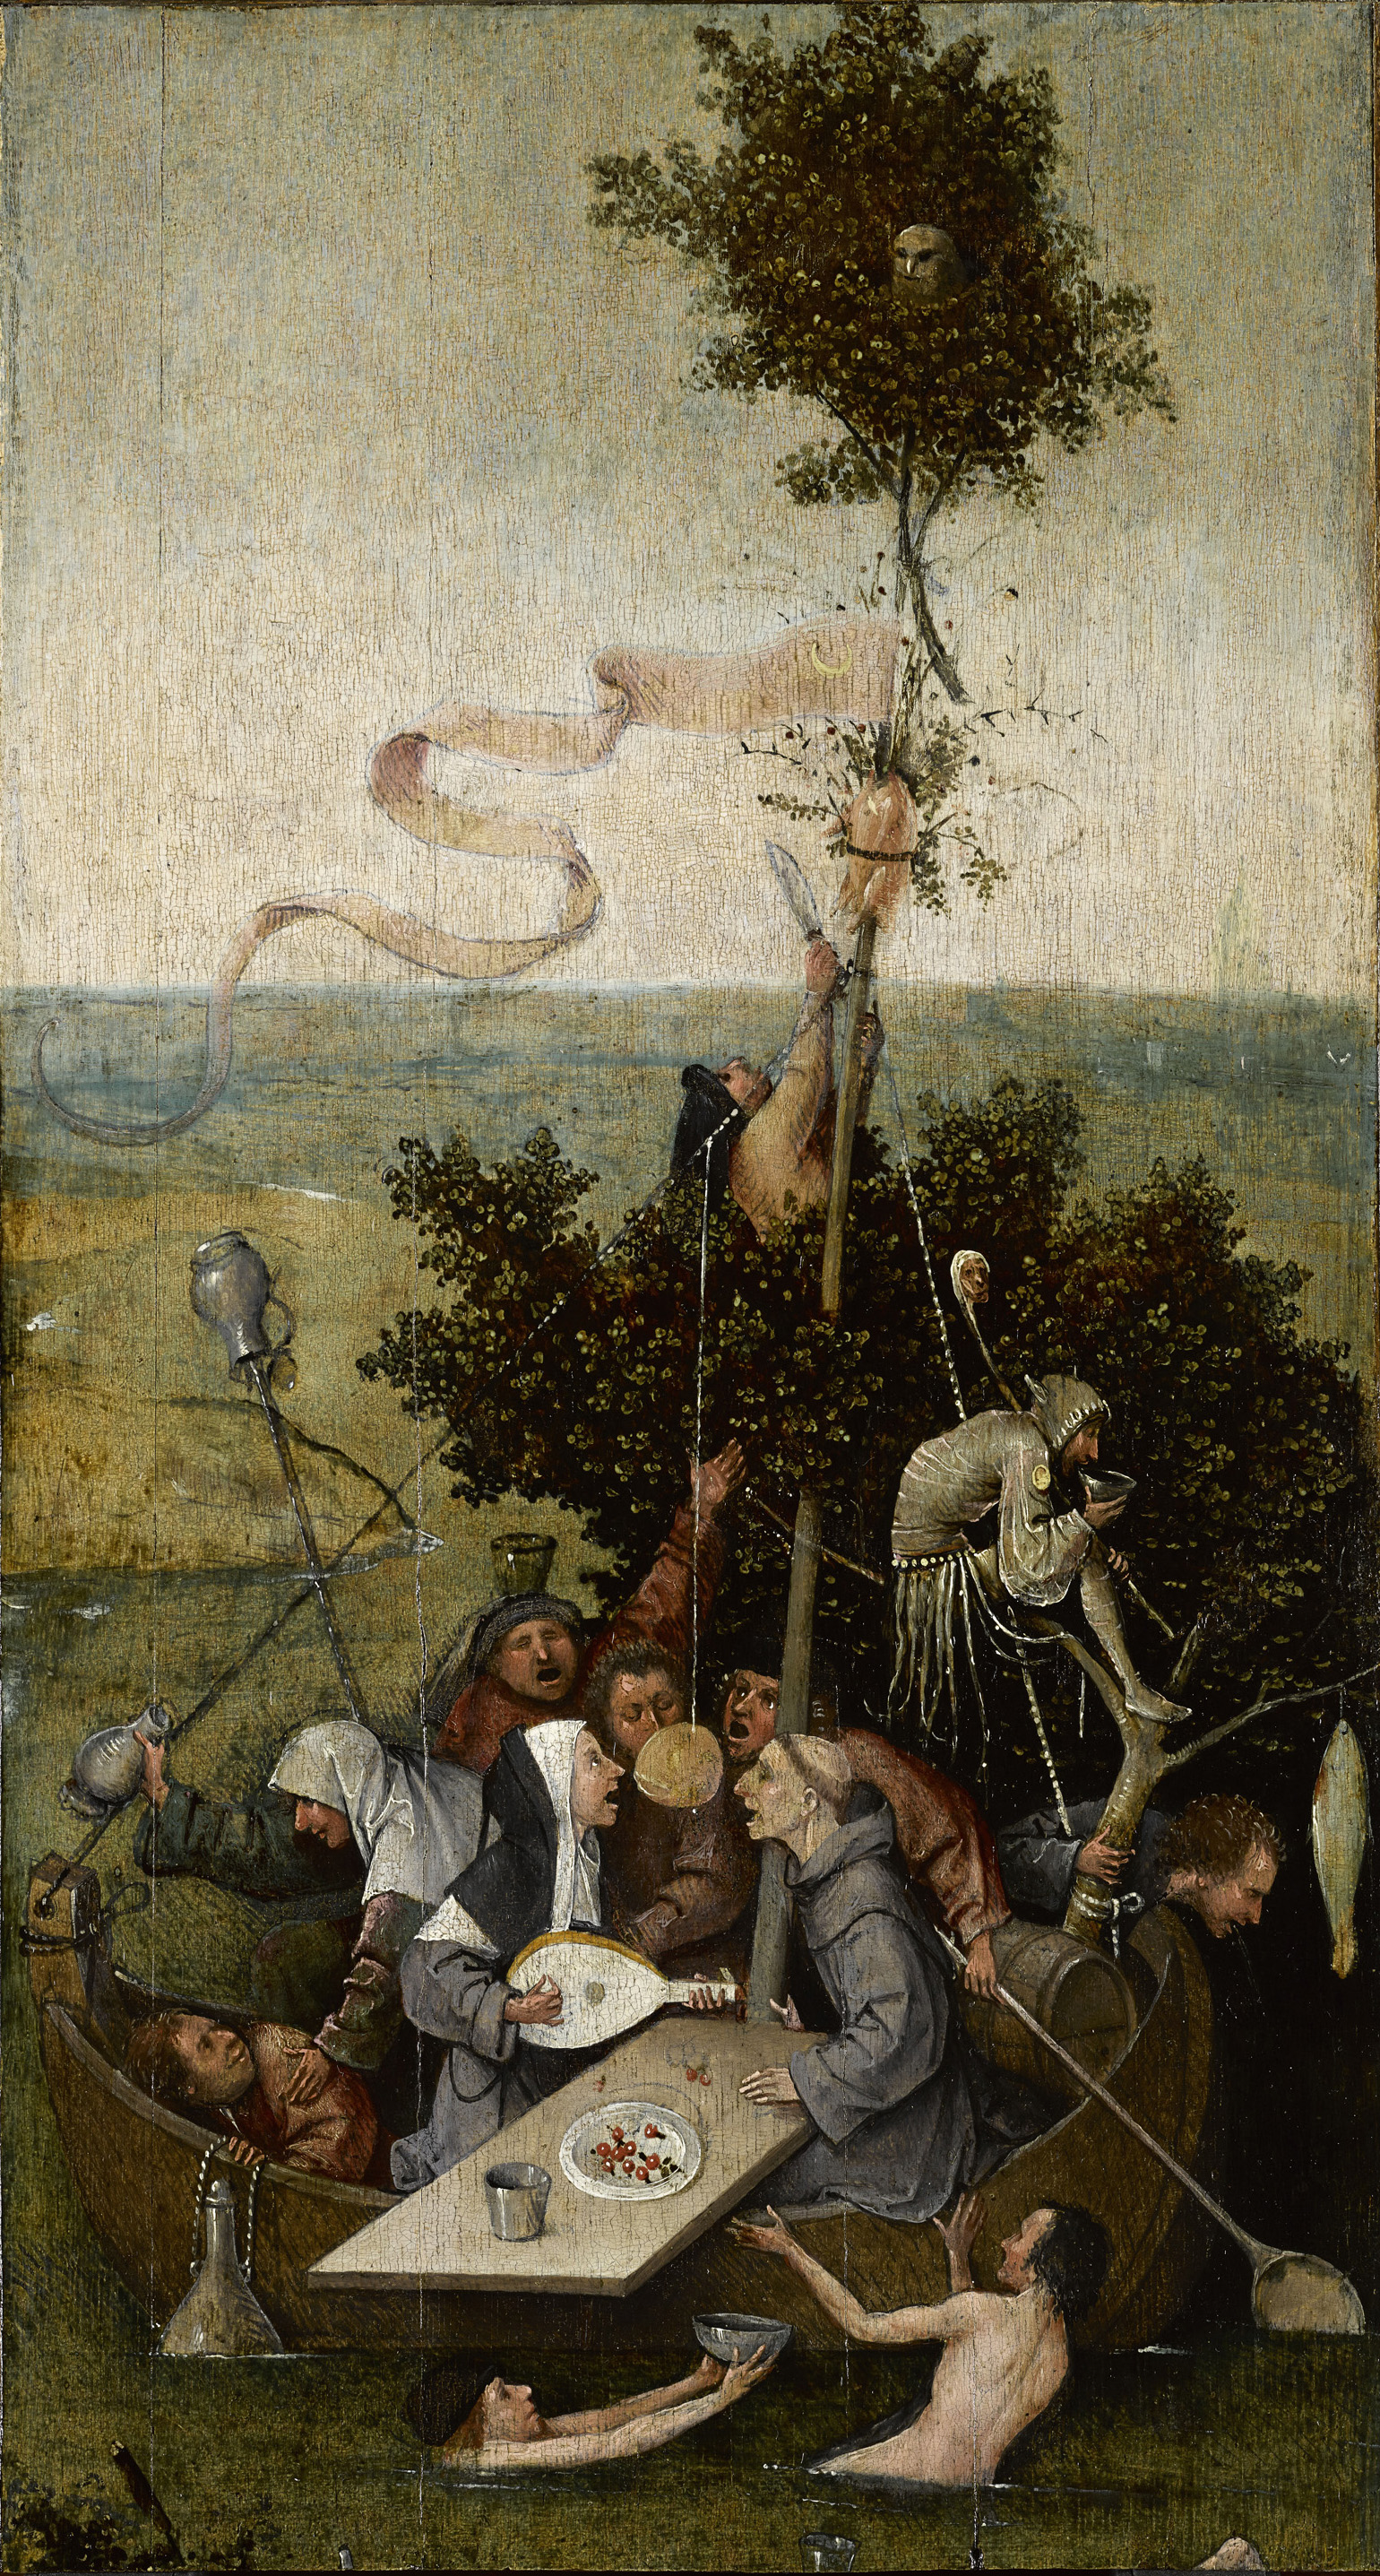 'The Ship of Fools' by Hieronymus Bosch (ca 1500-1510)